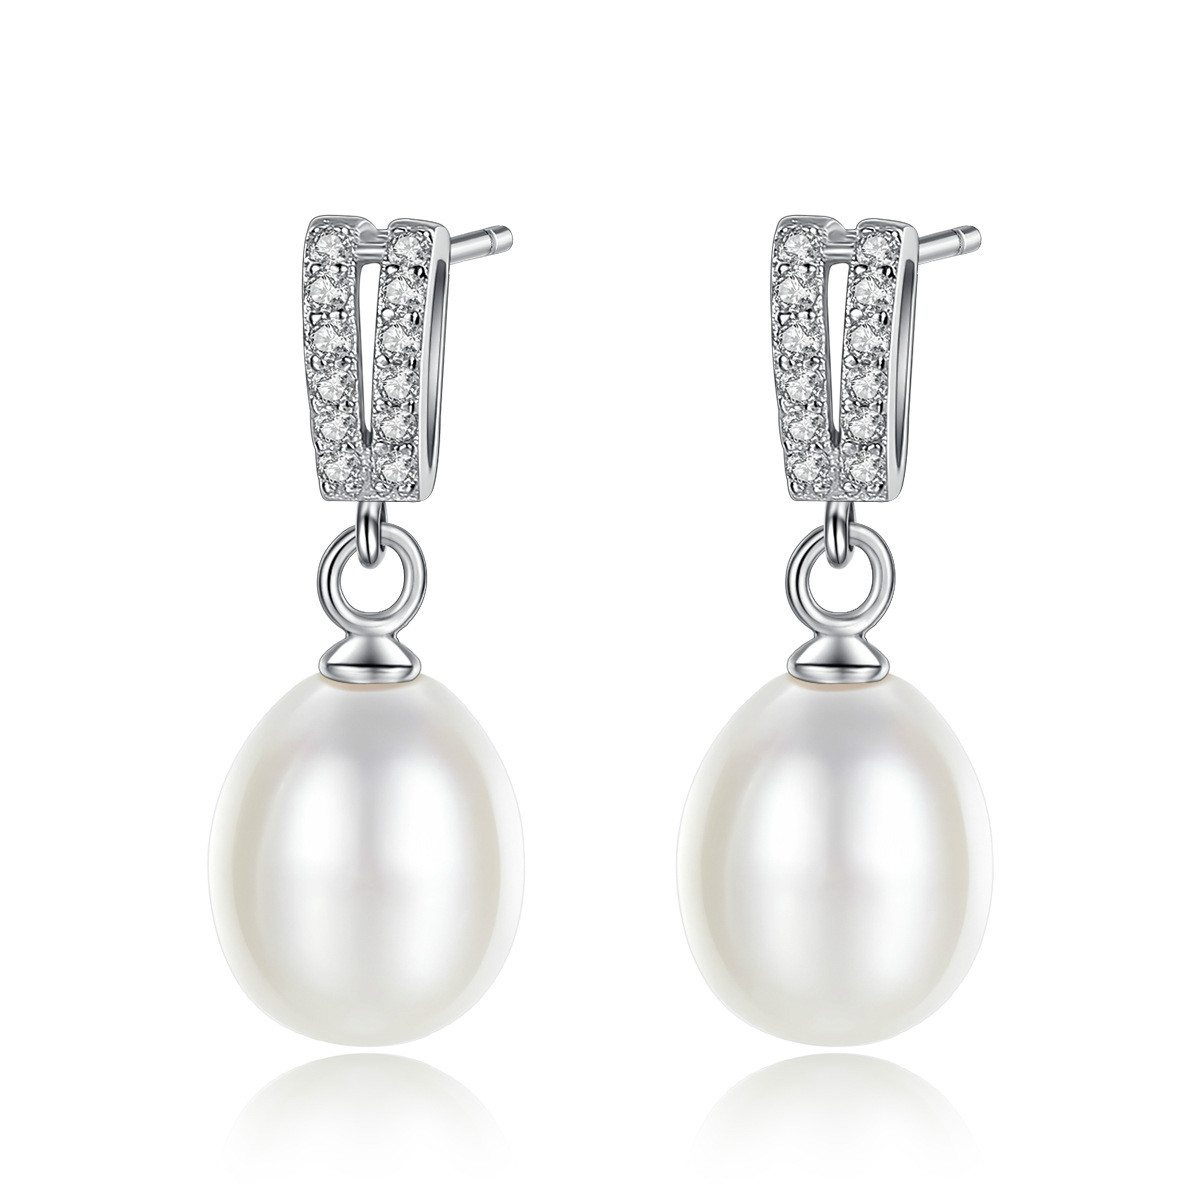 YUEYIN Silver 925 Earrings Micro Pave Cubic Zirconia Nature Pearl Dangle Earrings for Women Vintage Jewelry Women Earrings New in Earrings from Jewelry Accessories